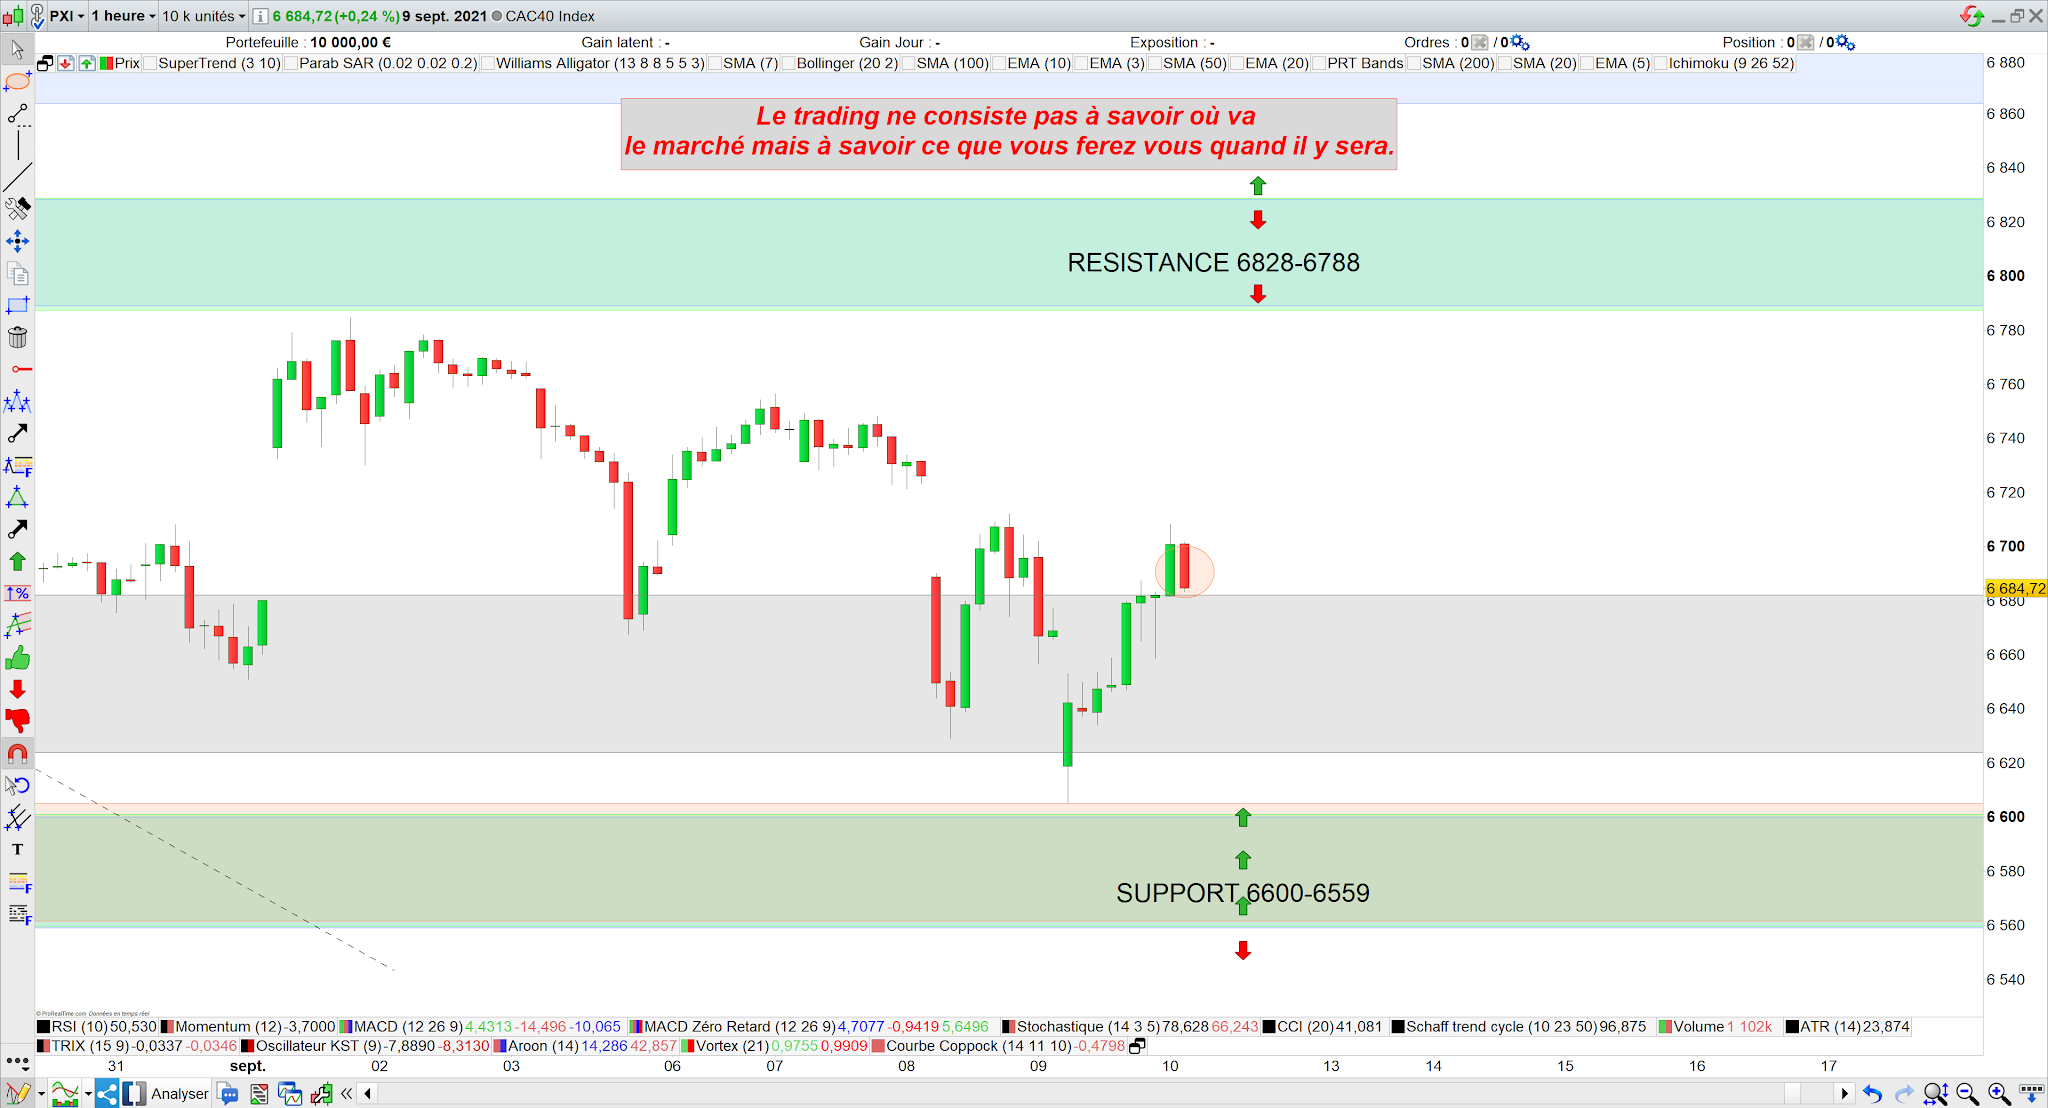 Trading cac40 10/09/21